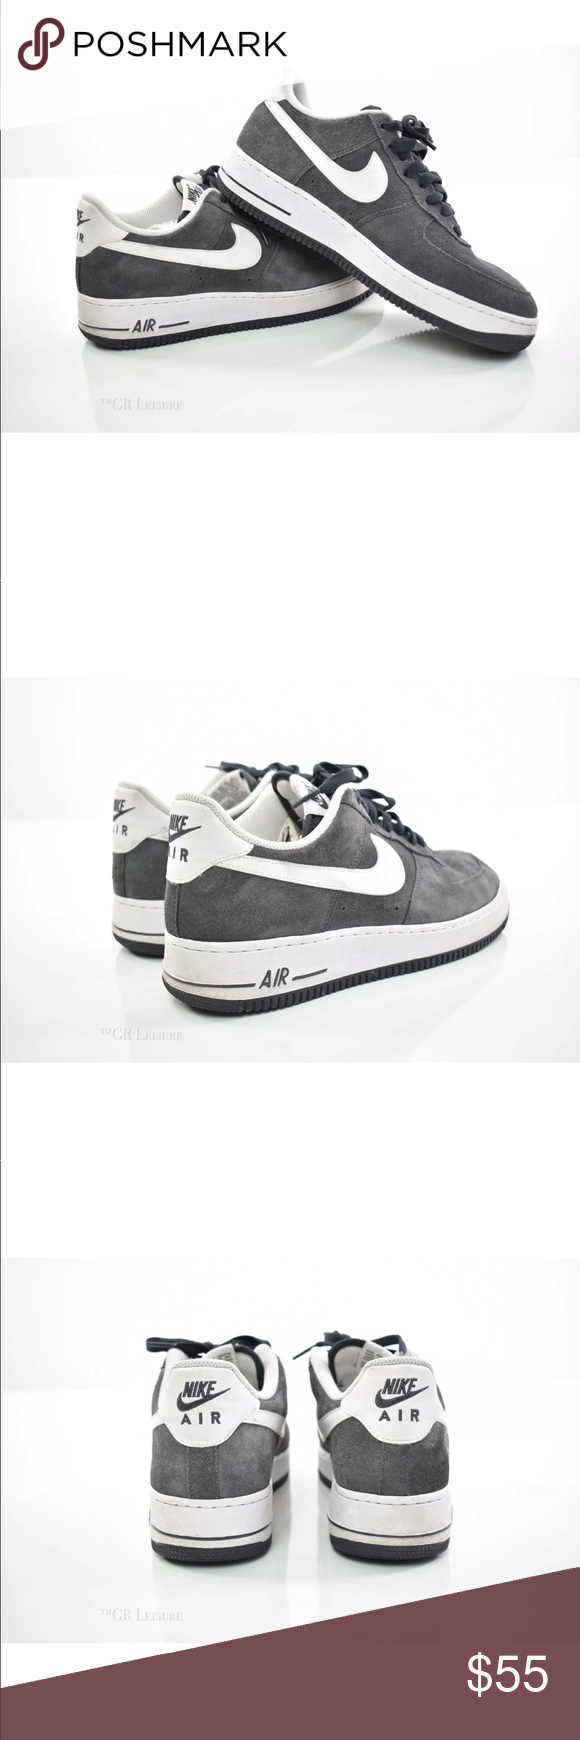 super popular fa4a0 7e4f7 NIKE AIR FORCE 1 ANTHRACITEWHITE SUEDE 315122-067 Gently Worn Good overall  condition